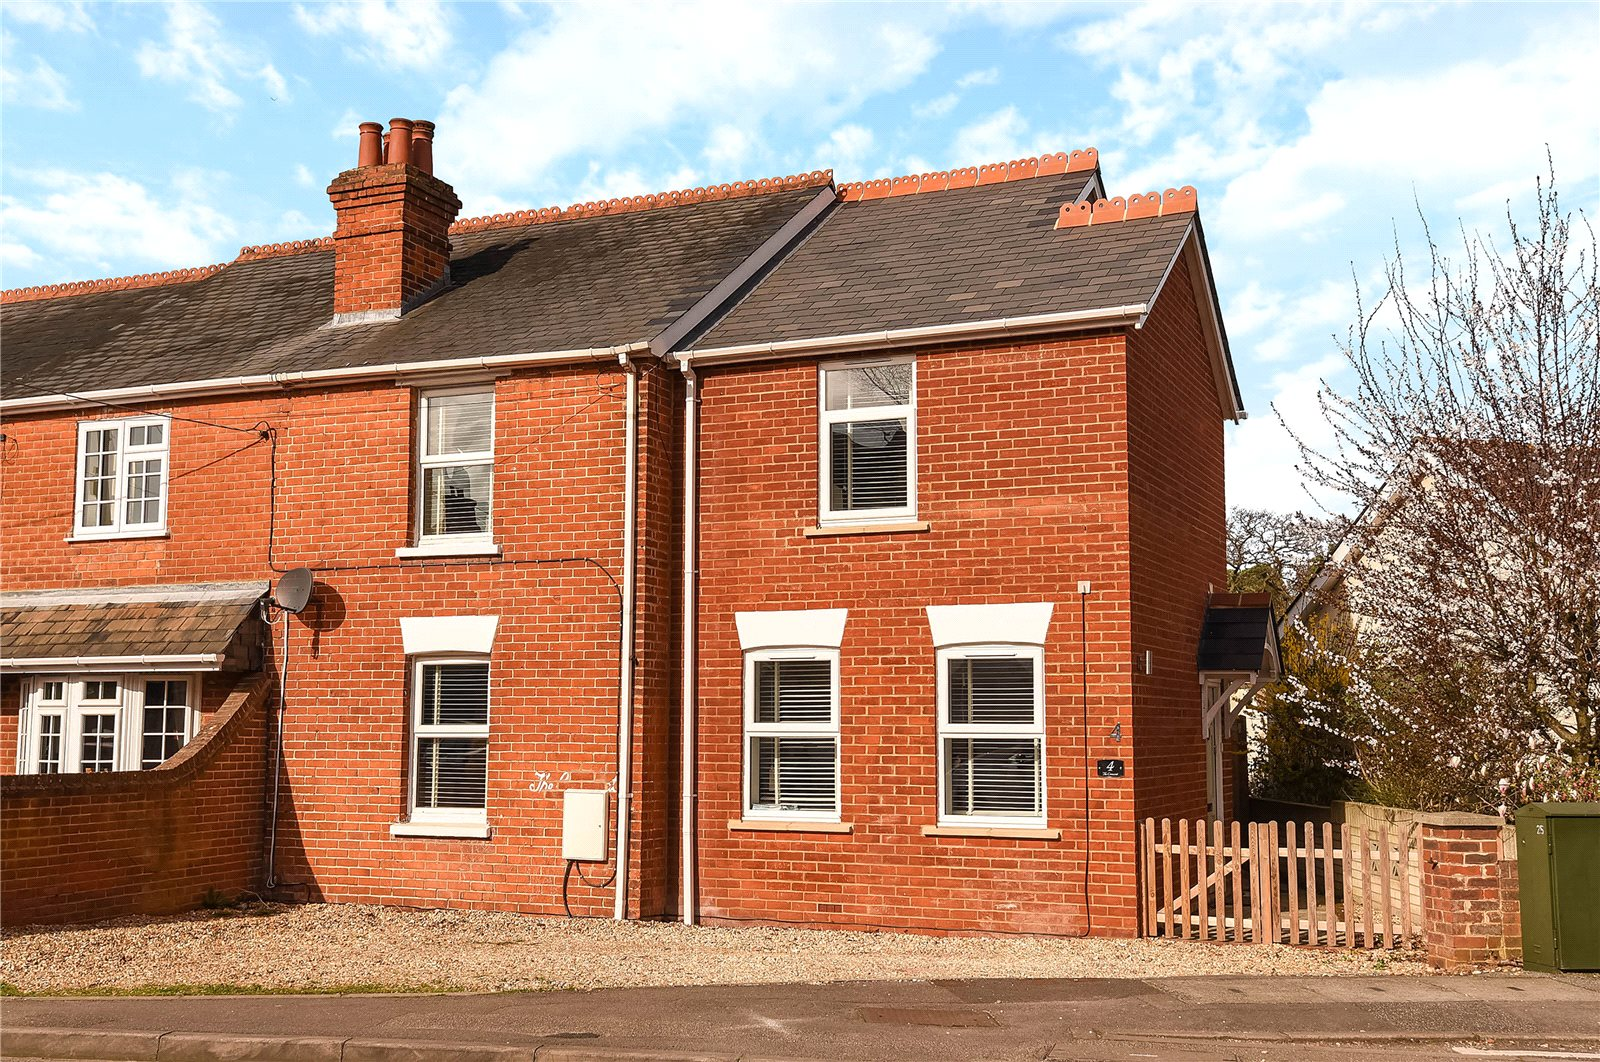 3 Bedrooms Semi Detached House for sale in The Crescent, Darby Green Road, Blackwater, Camberley, GU17